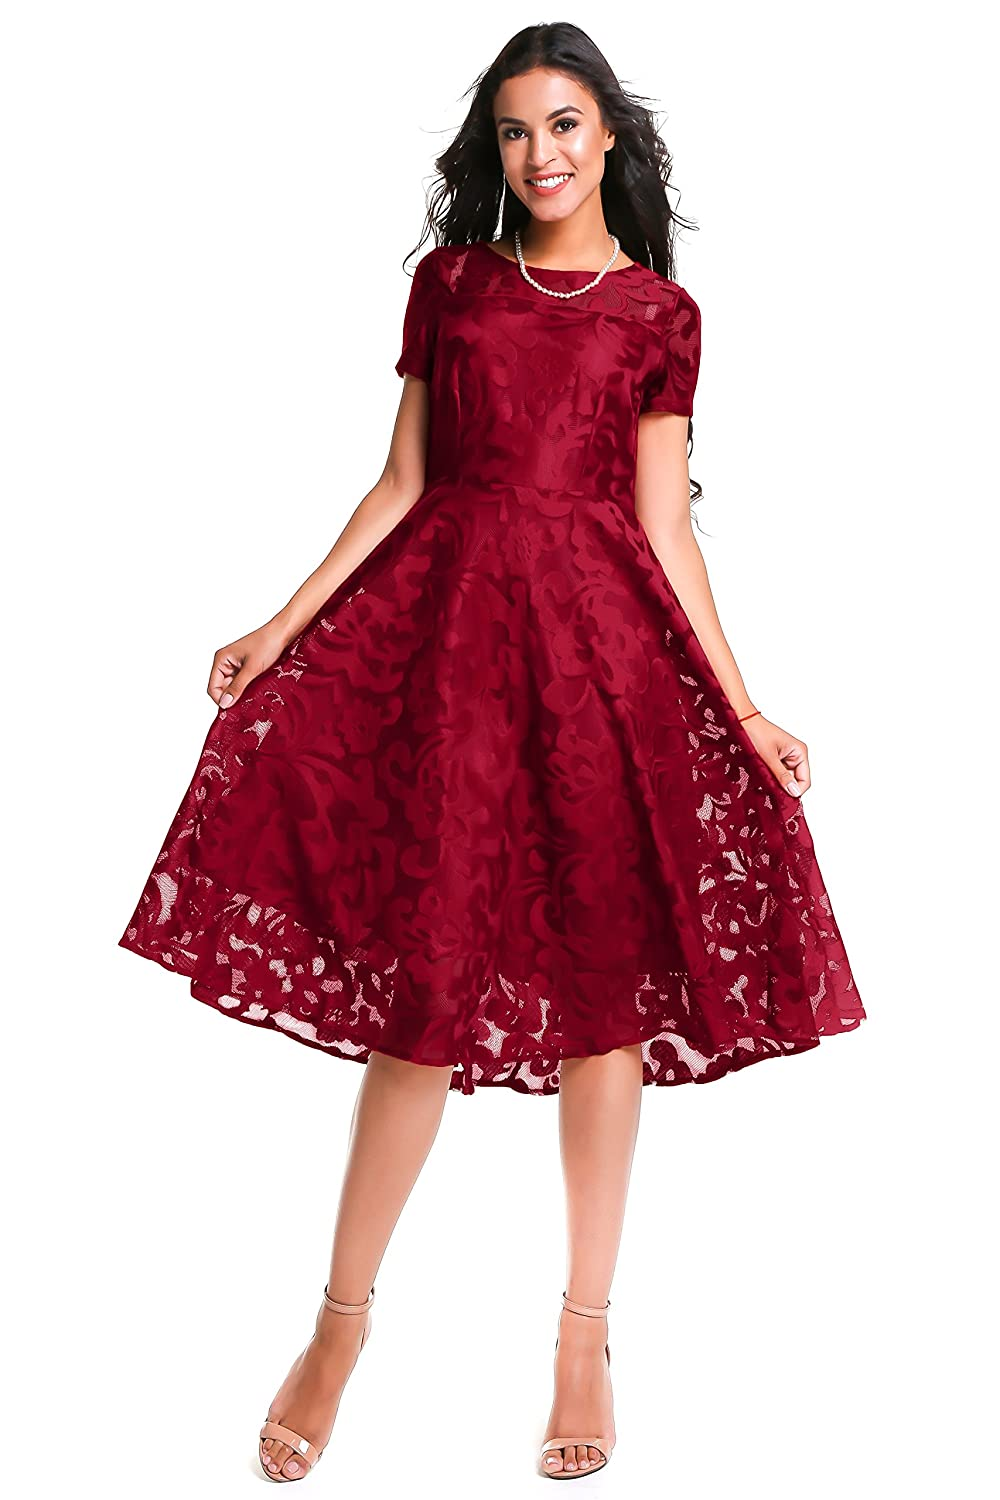 41c975a42db ELEGANT DESIGN  Semi Formal A-Line Fit And Flare Dress with Swing Skirt and  Short Floral Lace Sleeves